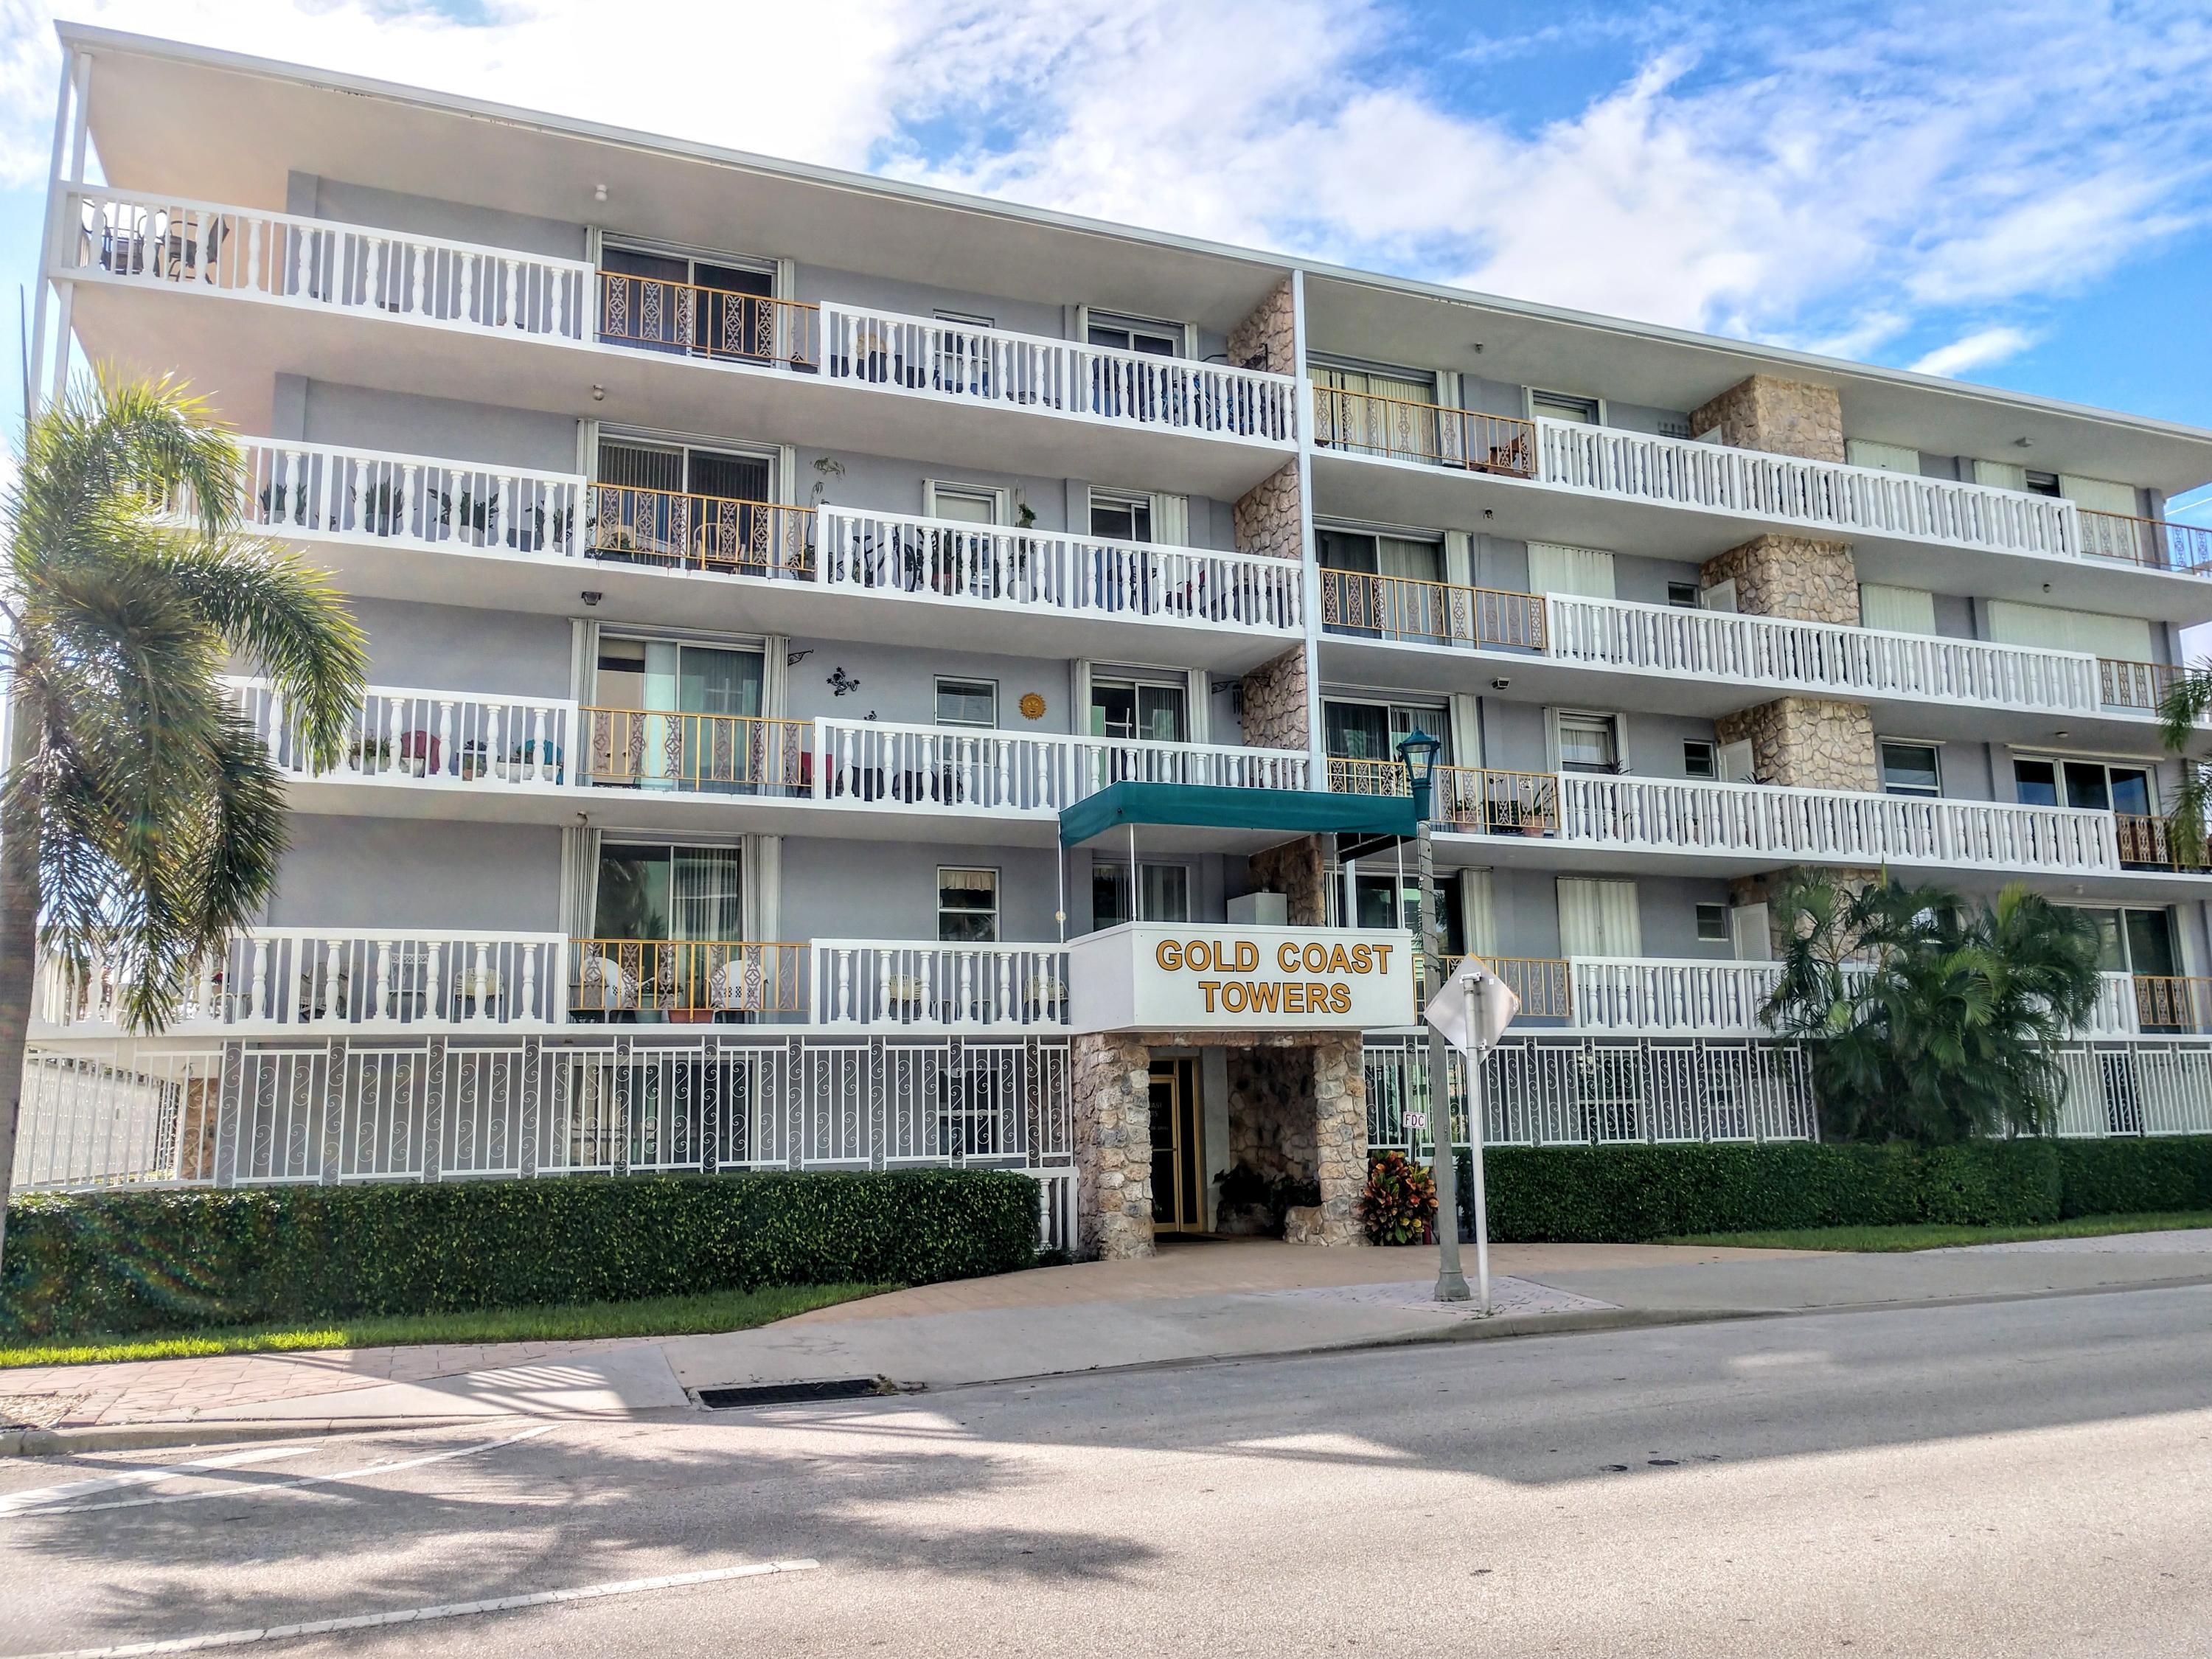 Top floor condo unit that has a spacious balcony/ patio with sweeping views of down town Lake Worth, intracoastal, and the island of Palm Beach.  The building has just undergone major improvements including new roof in July 2019, new paint on entire building, new elevator in 2015.  All major building expenses recently completed.  This two bedroom two bath unit is light and bright, ceramic tile and wood in living area, carpet in bedrooms.  Kitchen has lots of cabinets and counter space.  Each bedroom has it's own walk-in closets.  Bathrooms have been upgraded with granite counter tops, cabinets, and fixtures.  Covered parking, leasing okay after 1 year.  The building is steps away from the park, golf course, beach, park, downtown, shops, and restaurants.